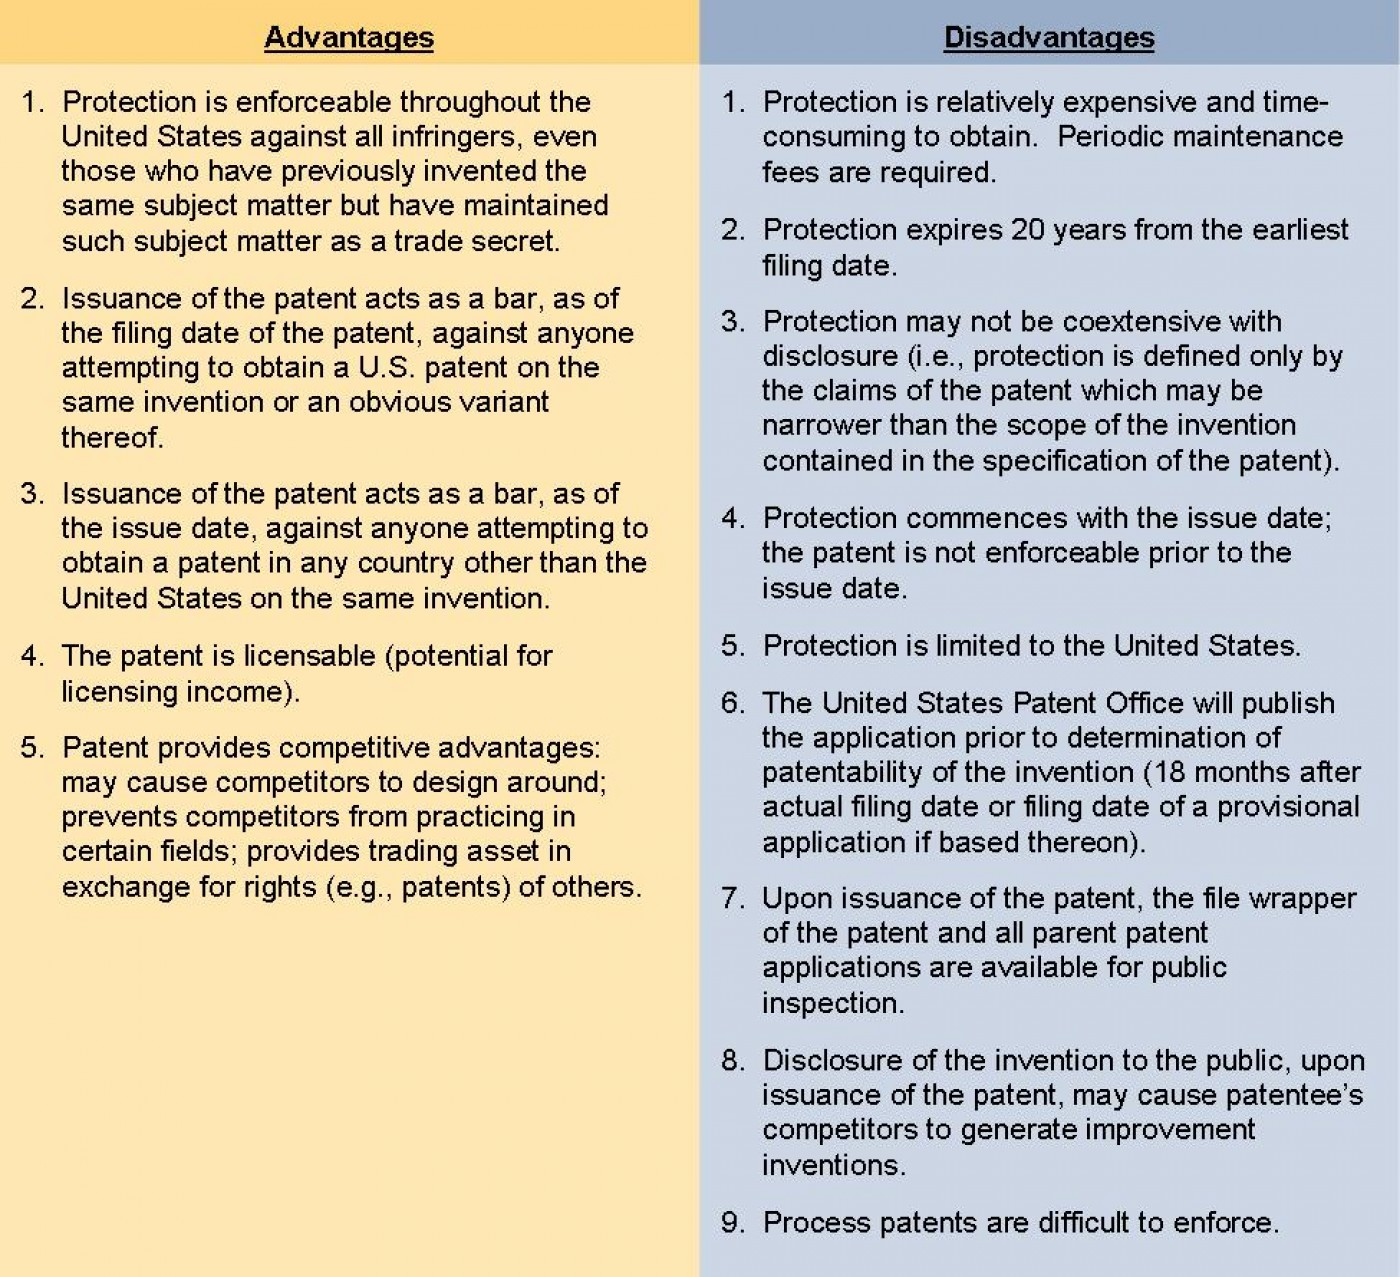 027 News87pic2 Advantage And Disadvantage Of Science Essay Shocking Advantages Disadvantages Pdf In Hindi English 1400